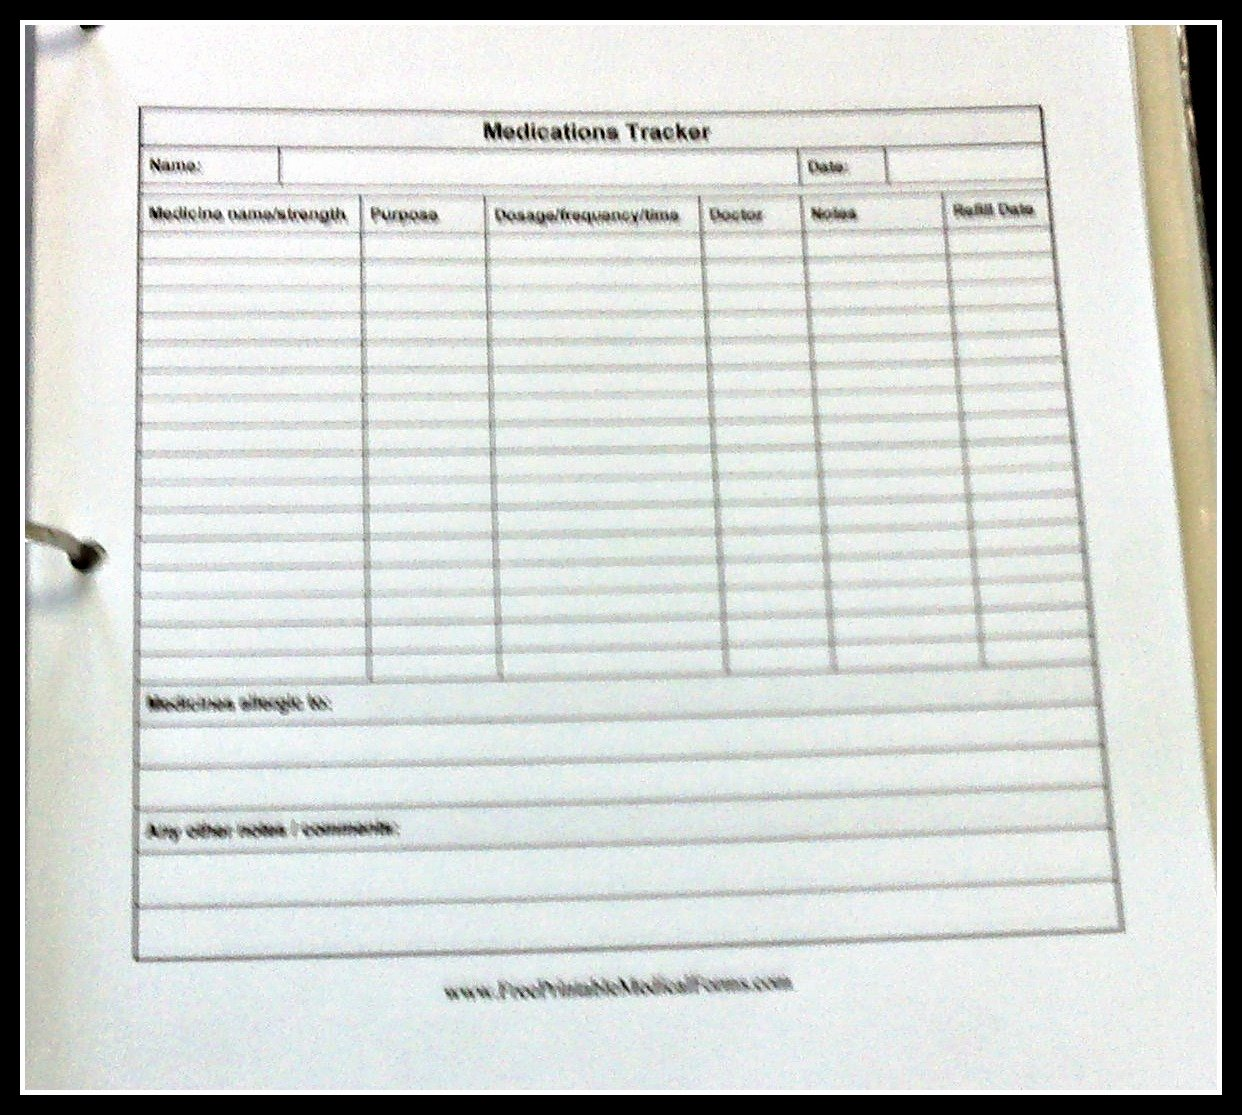 Medication Administration Record Template Excel